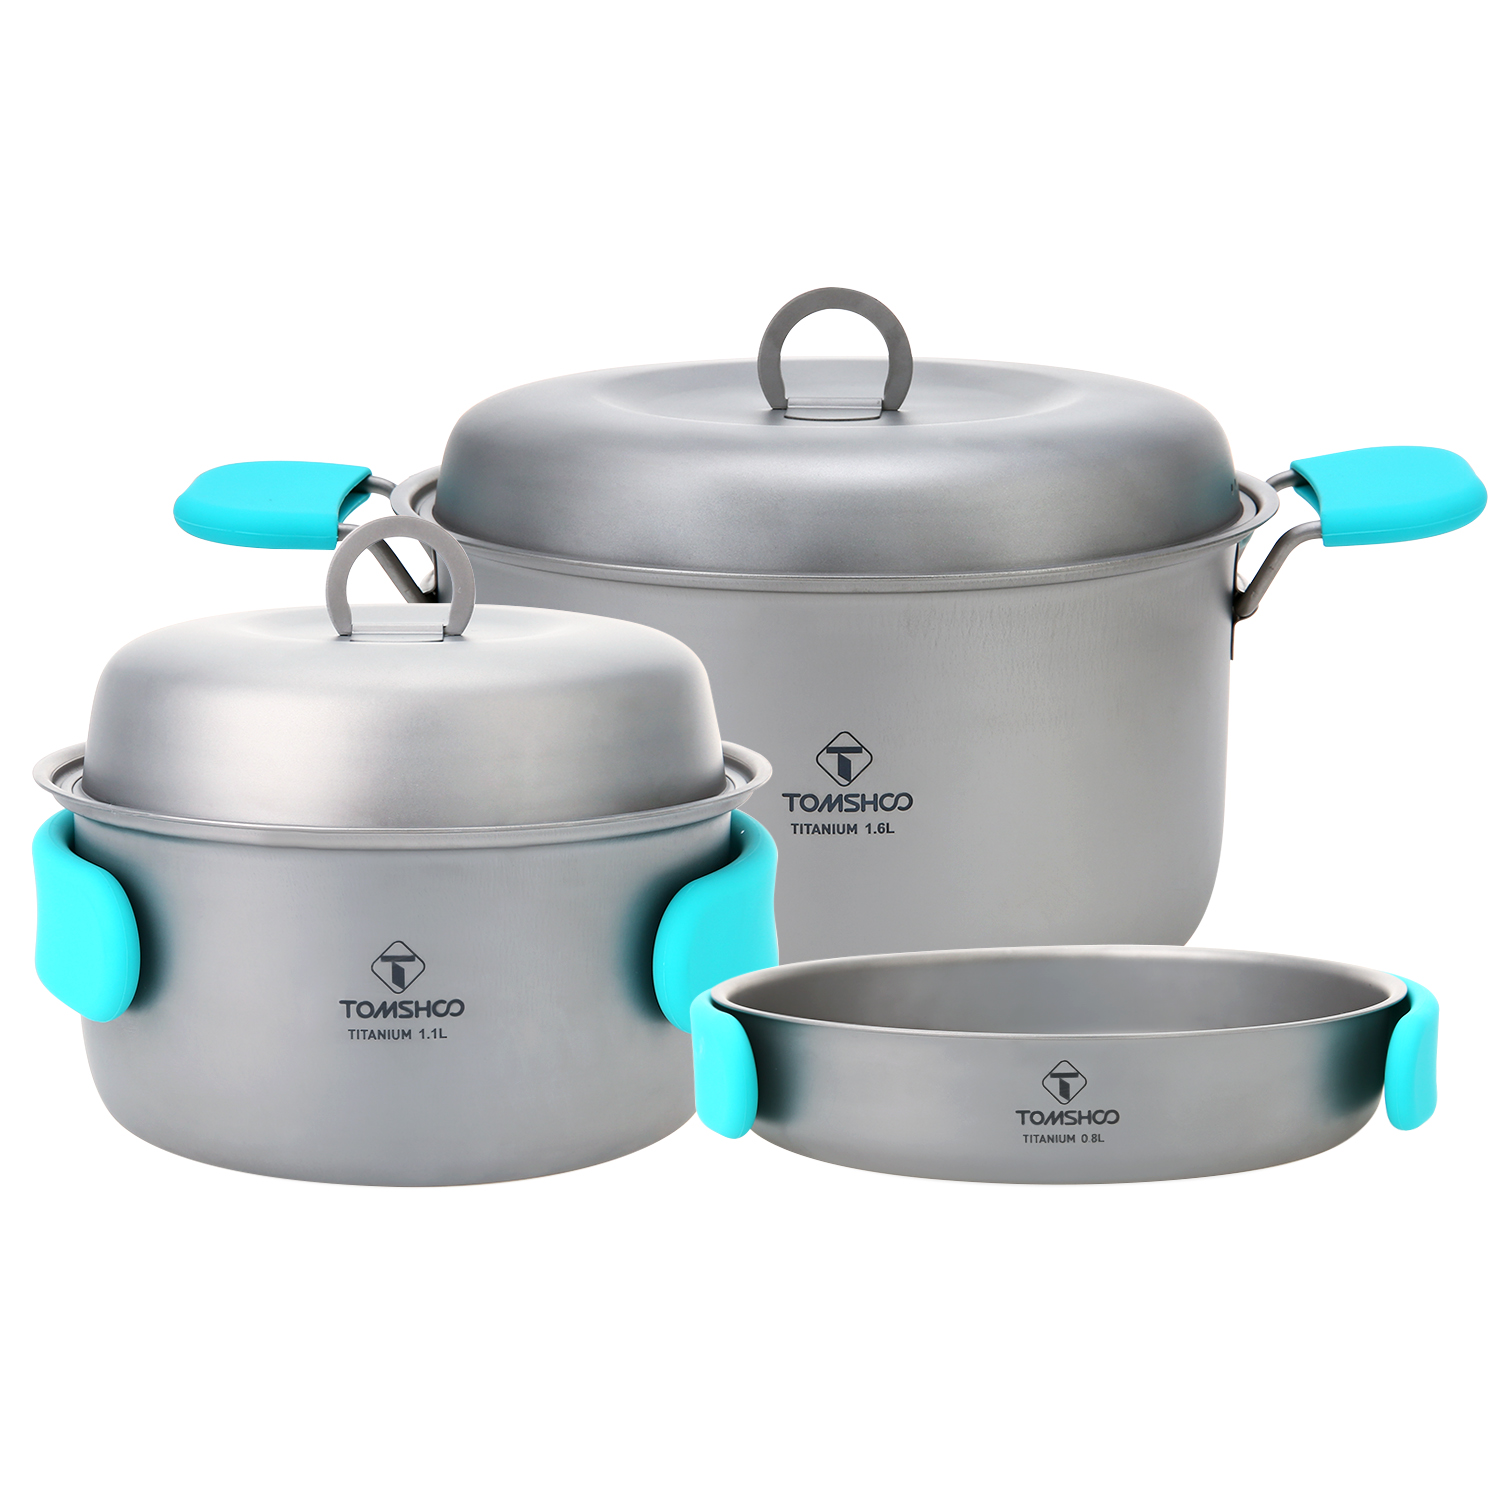 Tomshoo 3 Piece Titanium Cookset Outdoor Picnic Cookware Pot Pan Cooking Tool Set Travel Cookware For Camping Hiking Backpacking